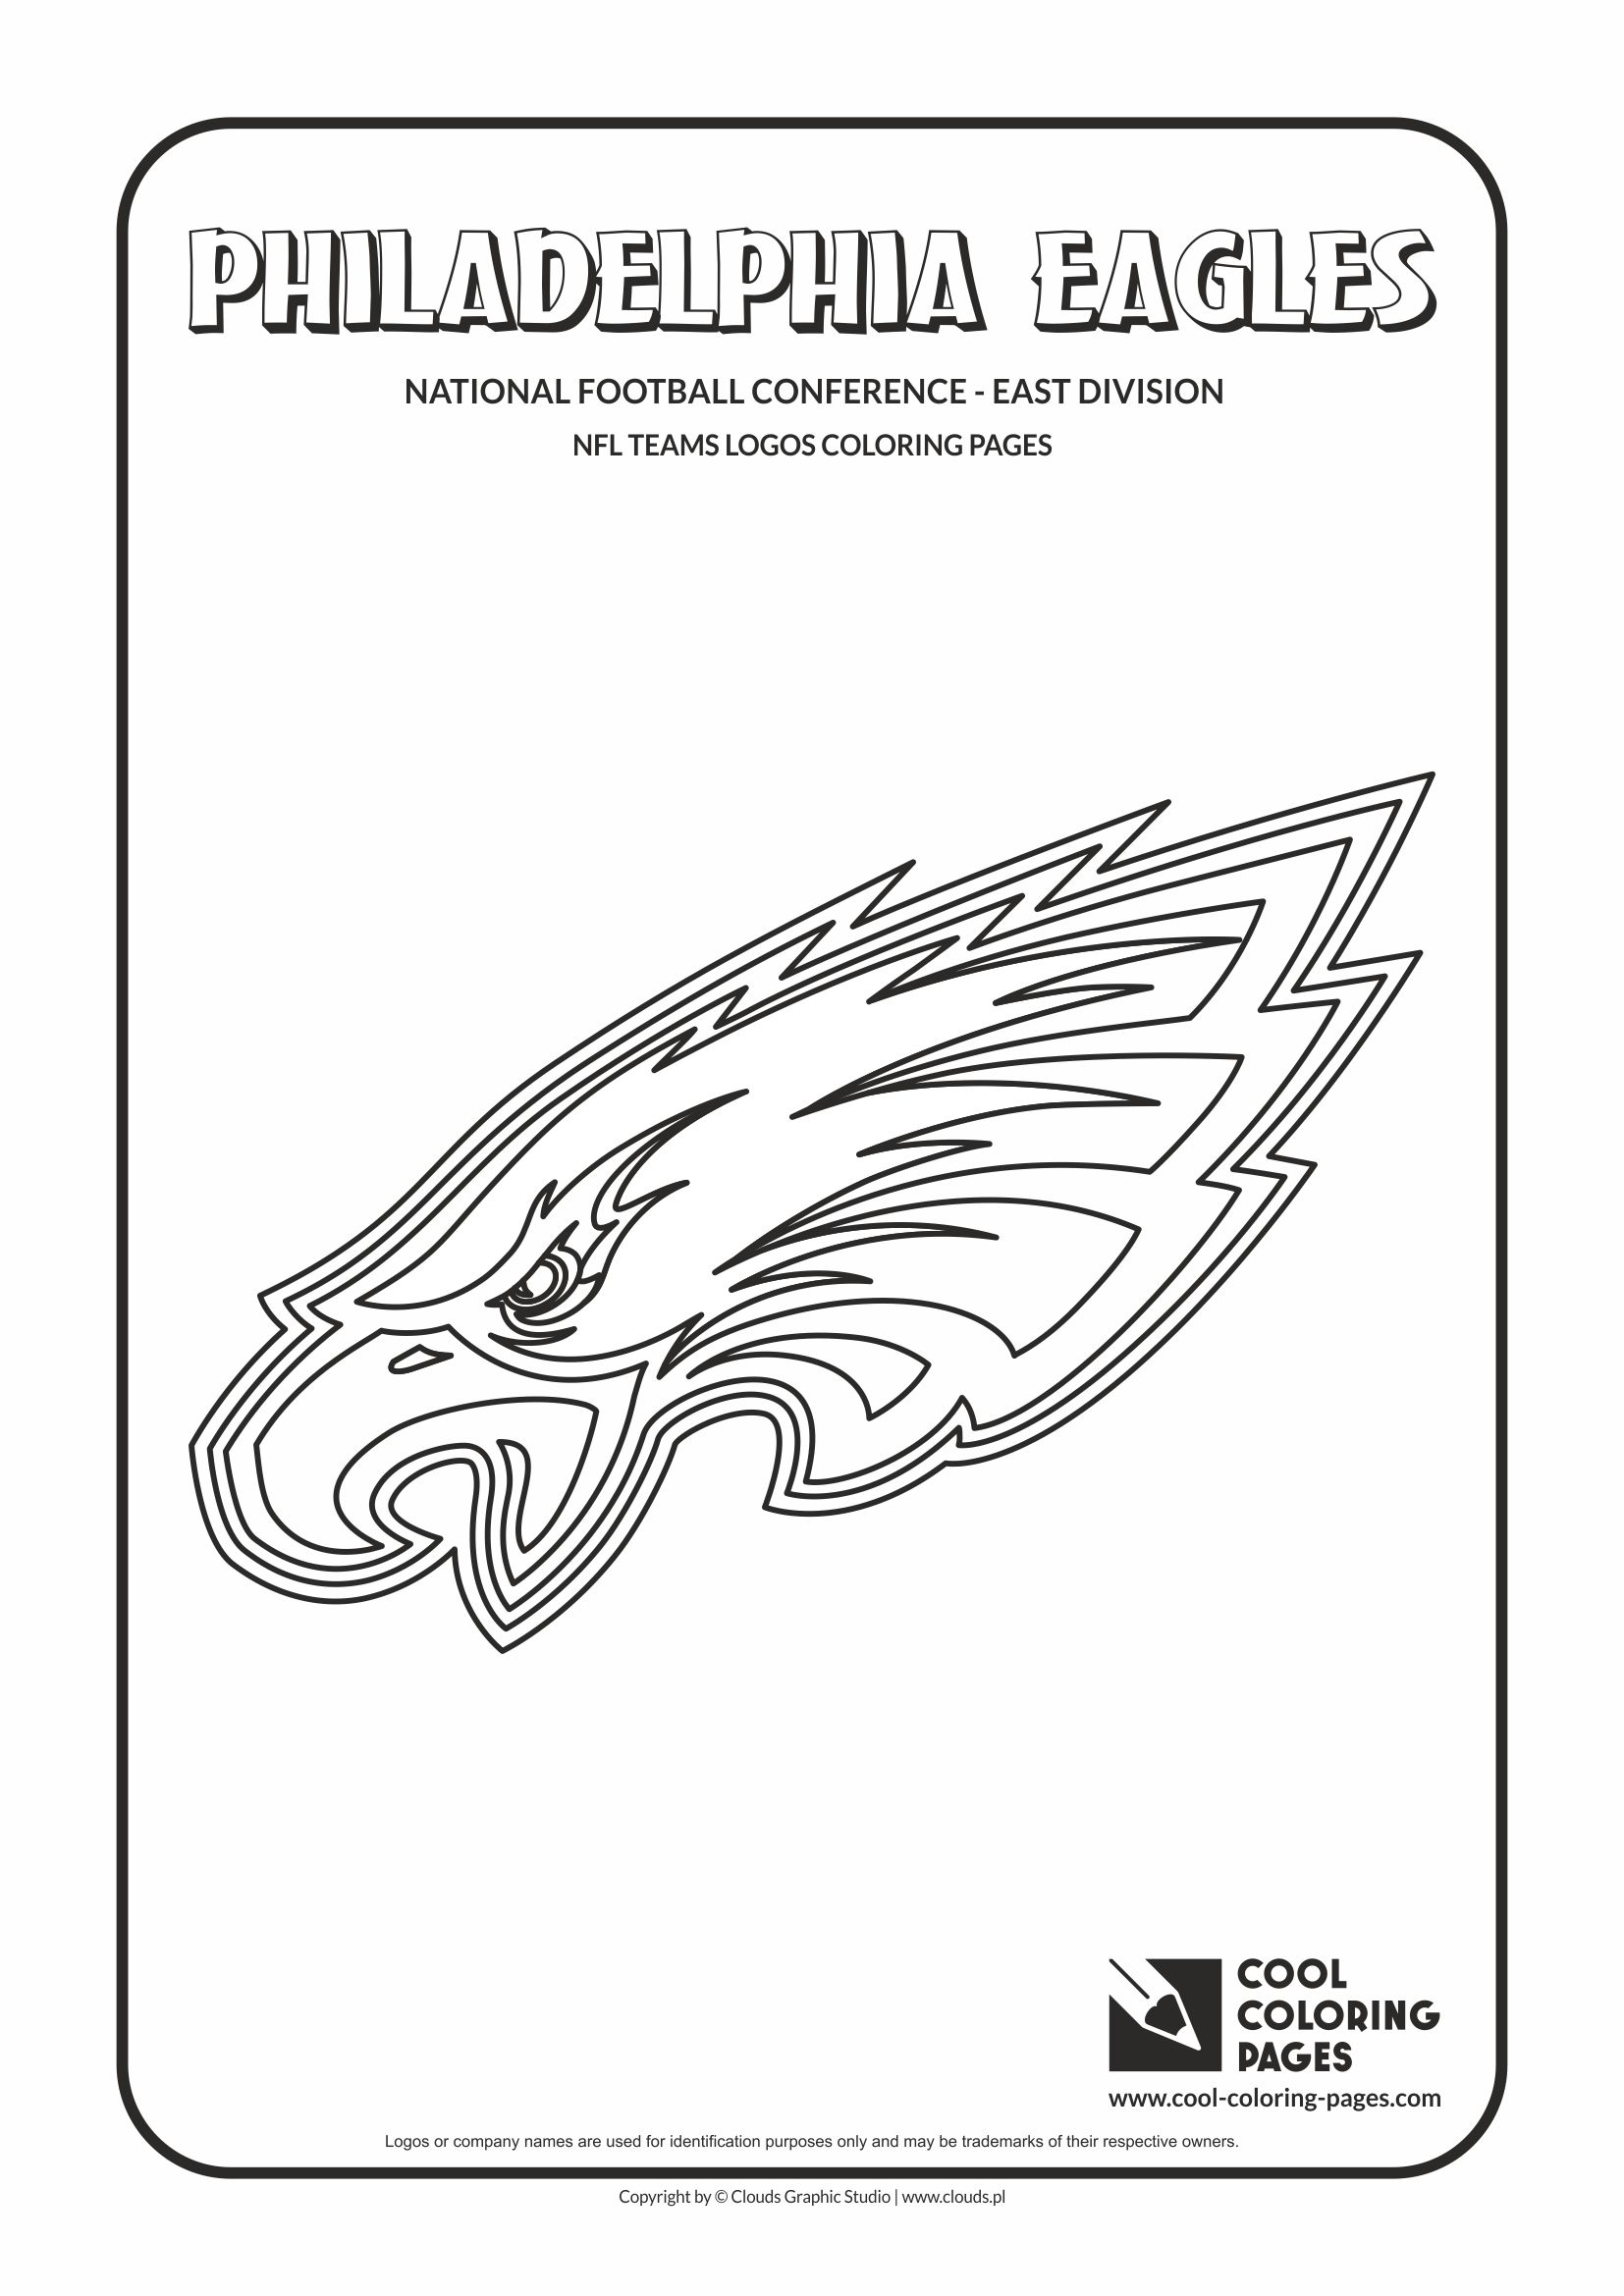 Cool Coloring Pages NFL teams logos